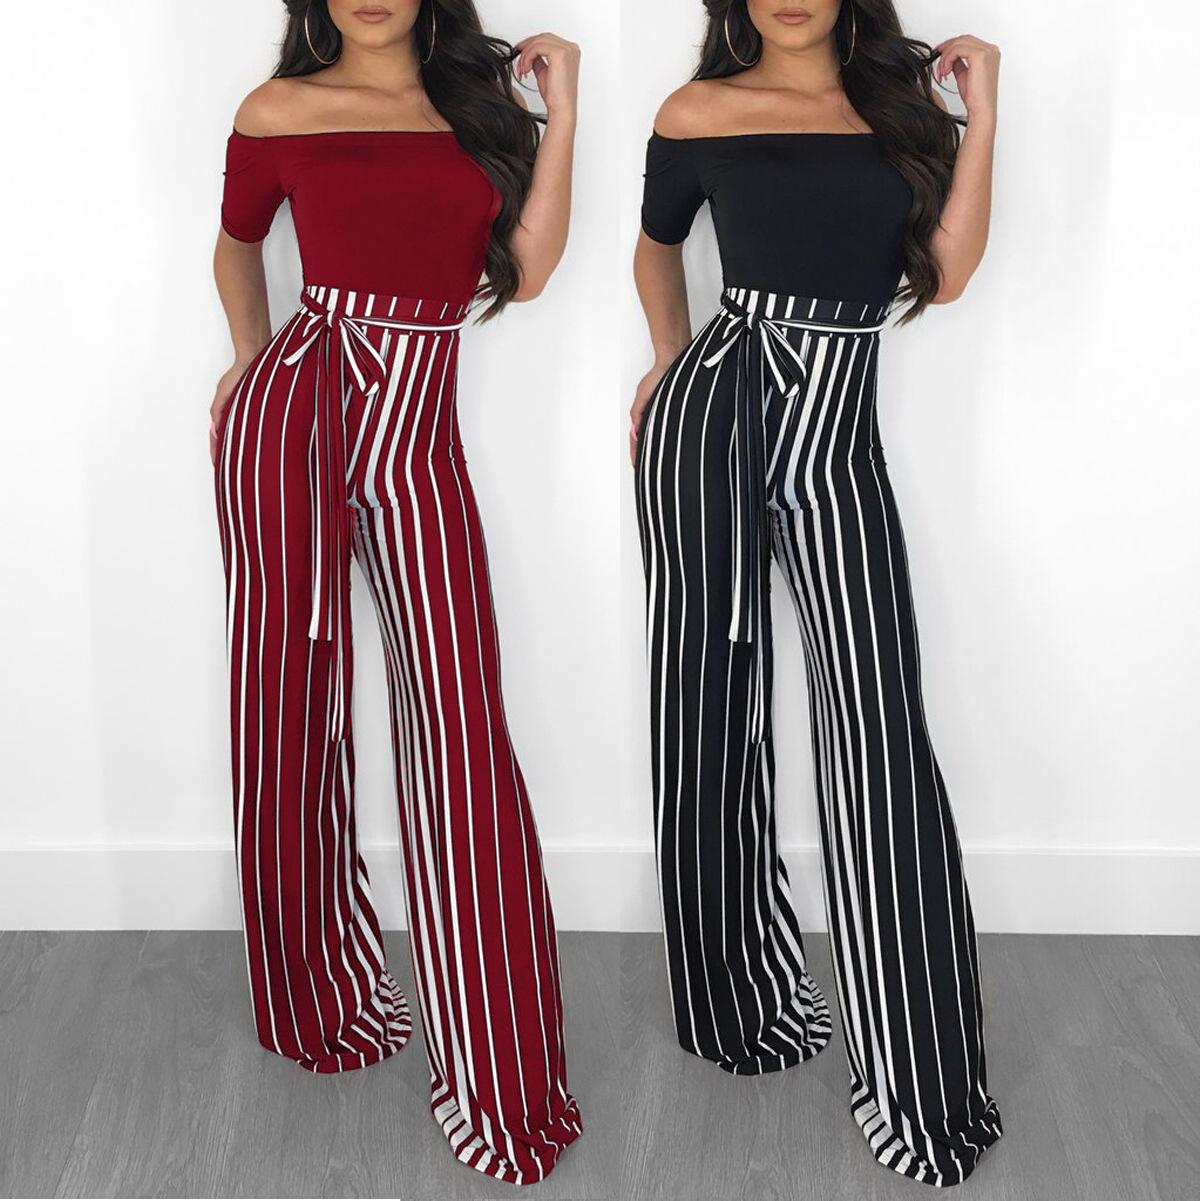 8c871d020ff 2019 2018 Women Elegant Jumpsuits Slash Neck Off Shoulder Striped Jumpsuit  Fashion Short Sleeve Wide Leg Pants Rompers Overalls Black Red 5522 From ...